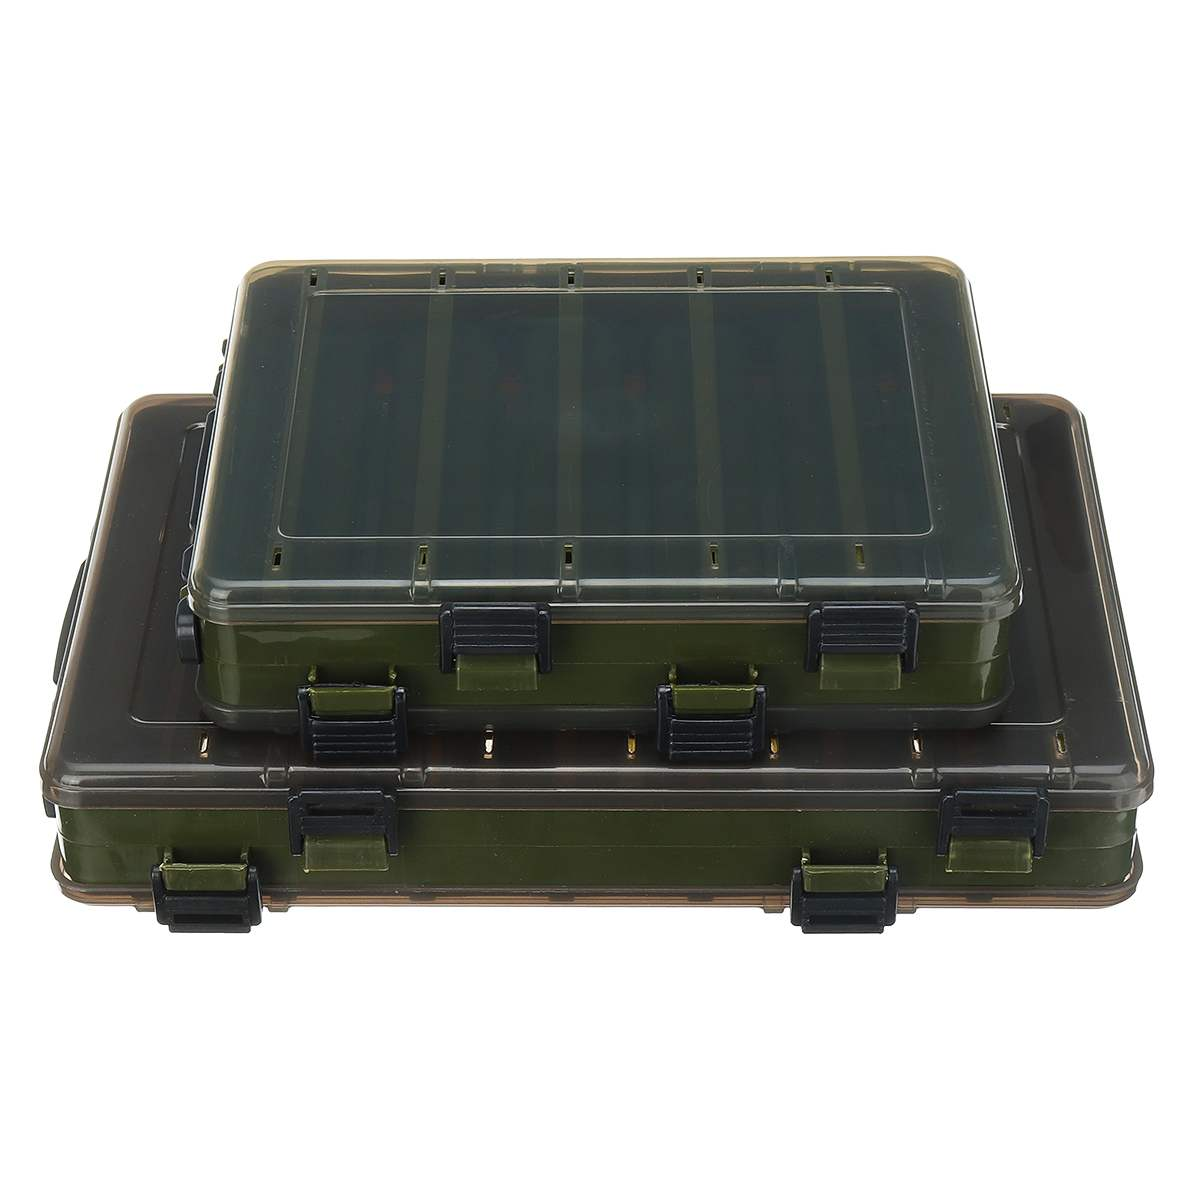 Fishing Tackle Box for Large capacity Bait Double Sided Plastic Lure Boxes Fly Fishing Tackle Storage Box Supplies High Strength|Fishing Tackle Boxes| |  - title=